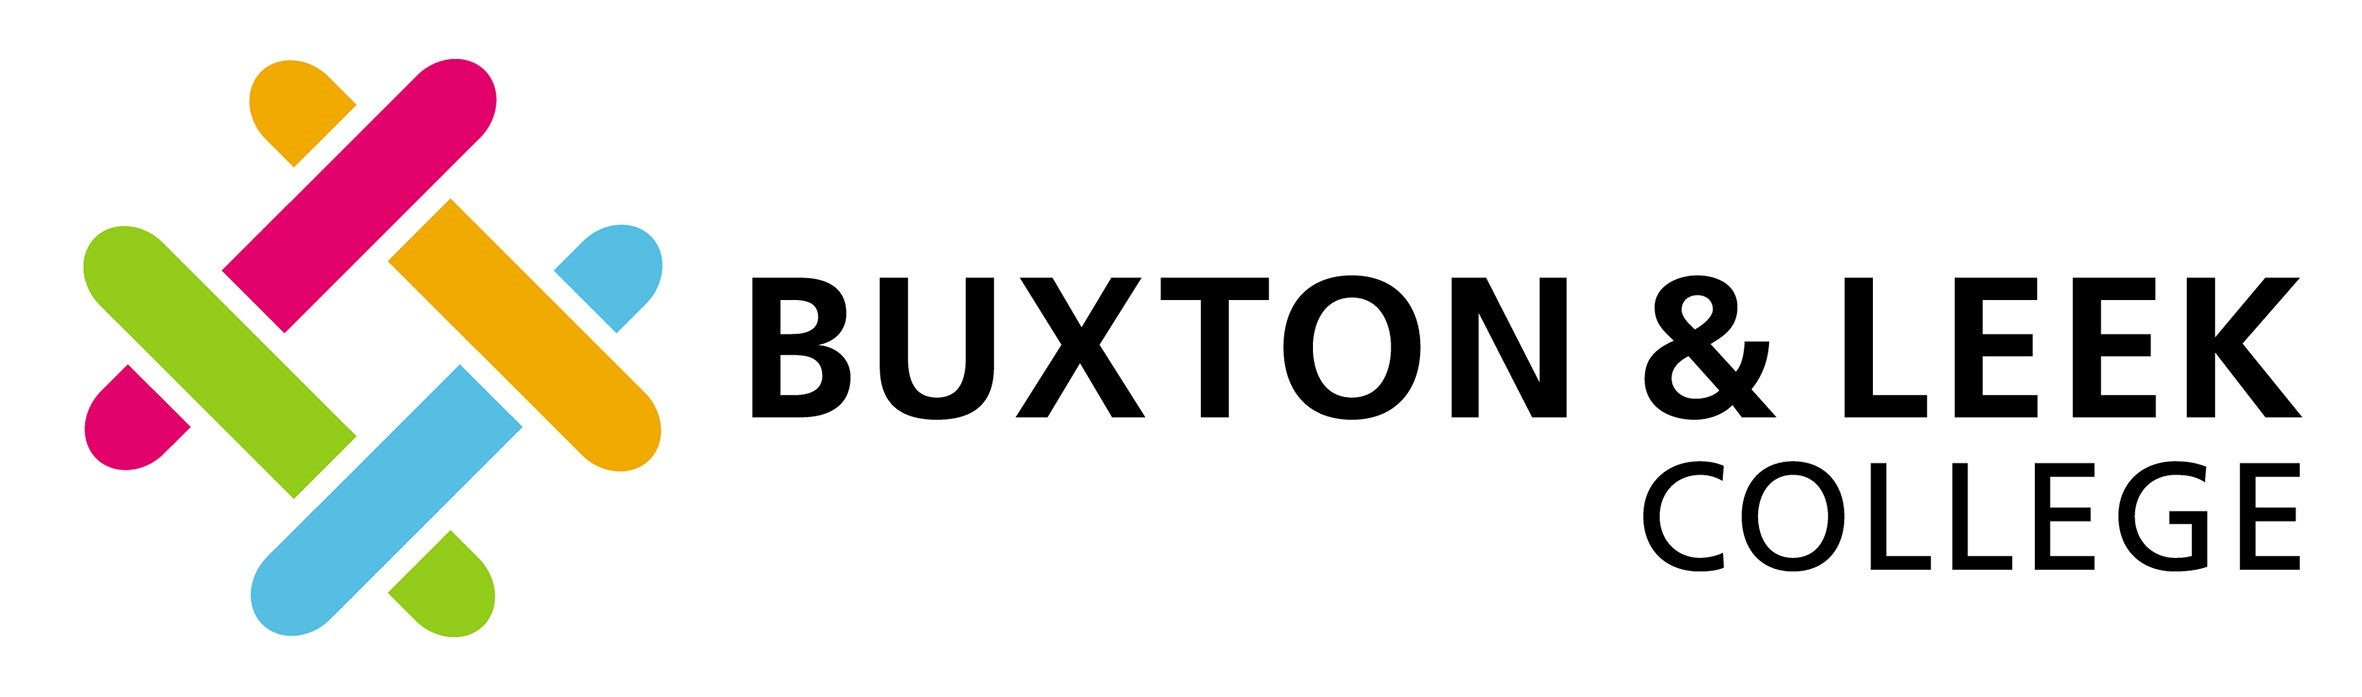 Buxton and Leek College Logo